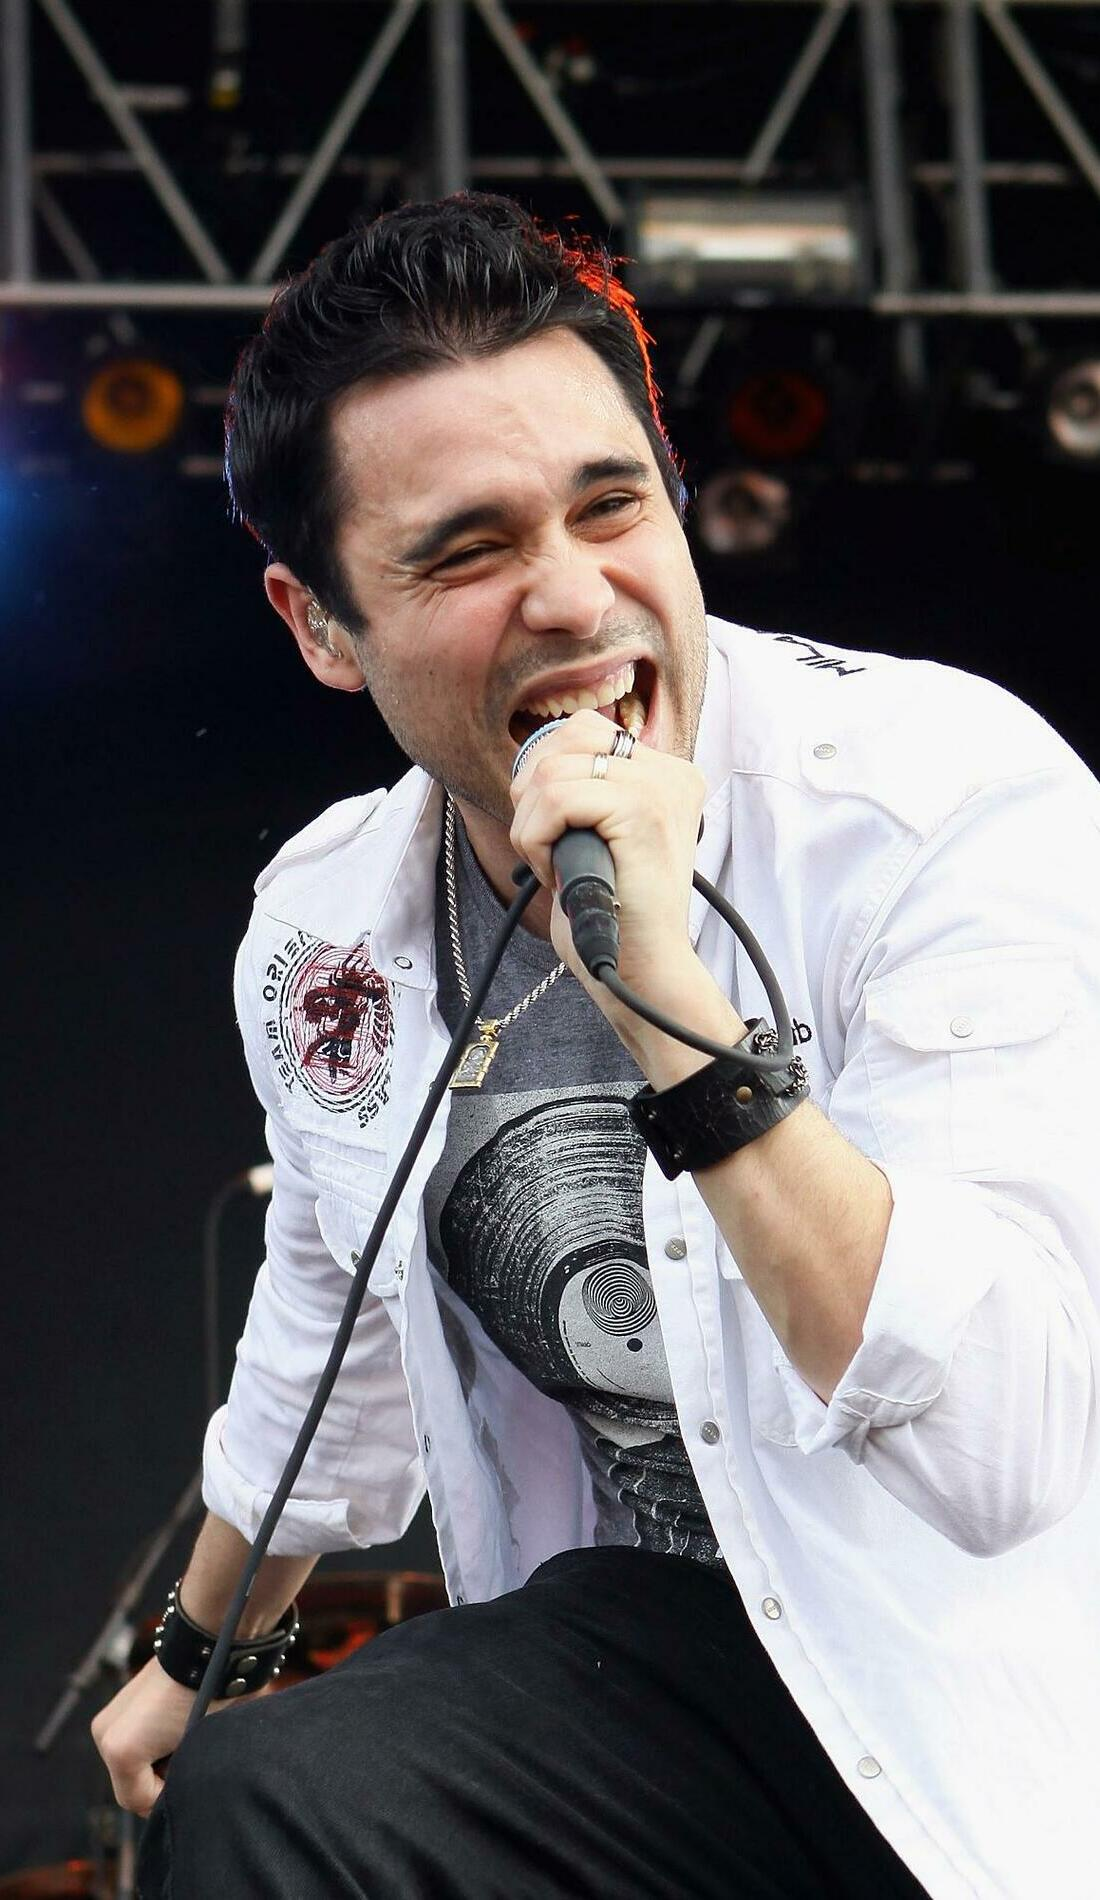 A Trapt live event